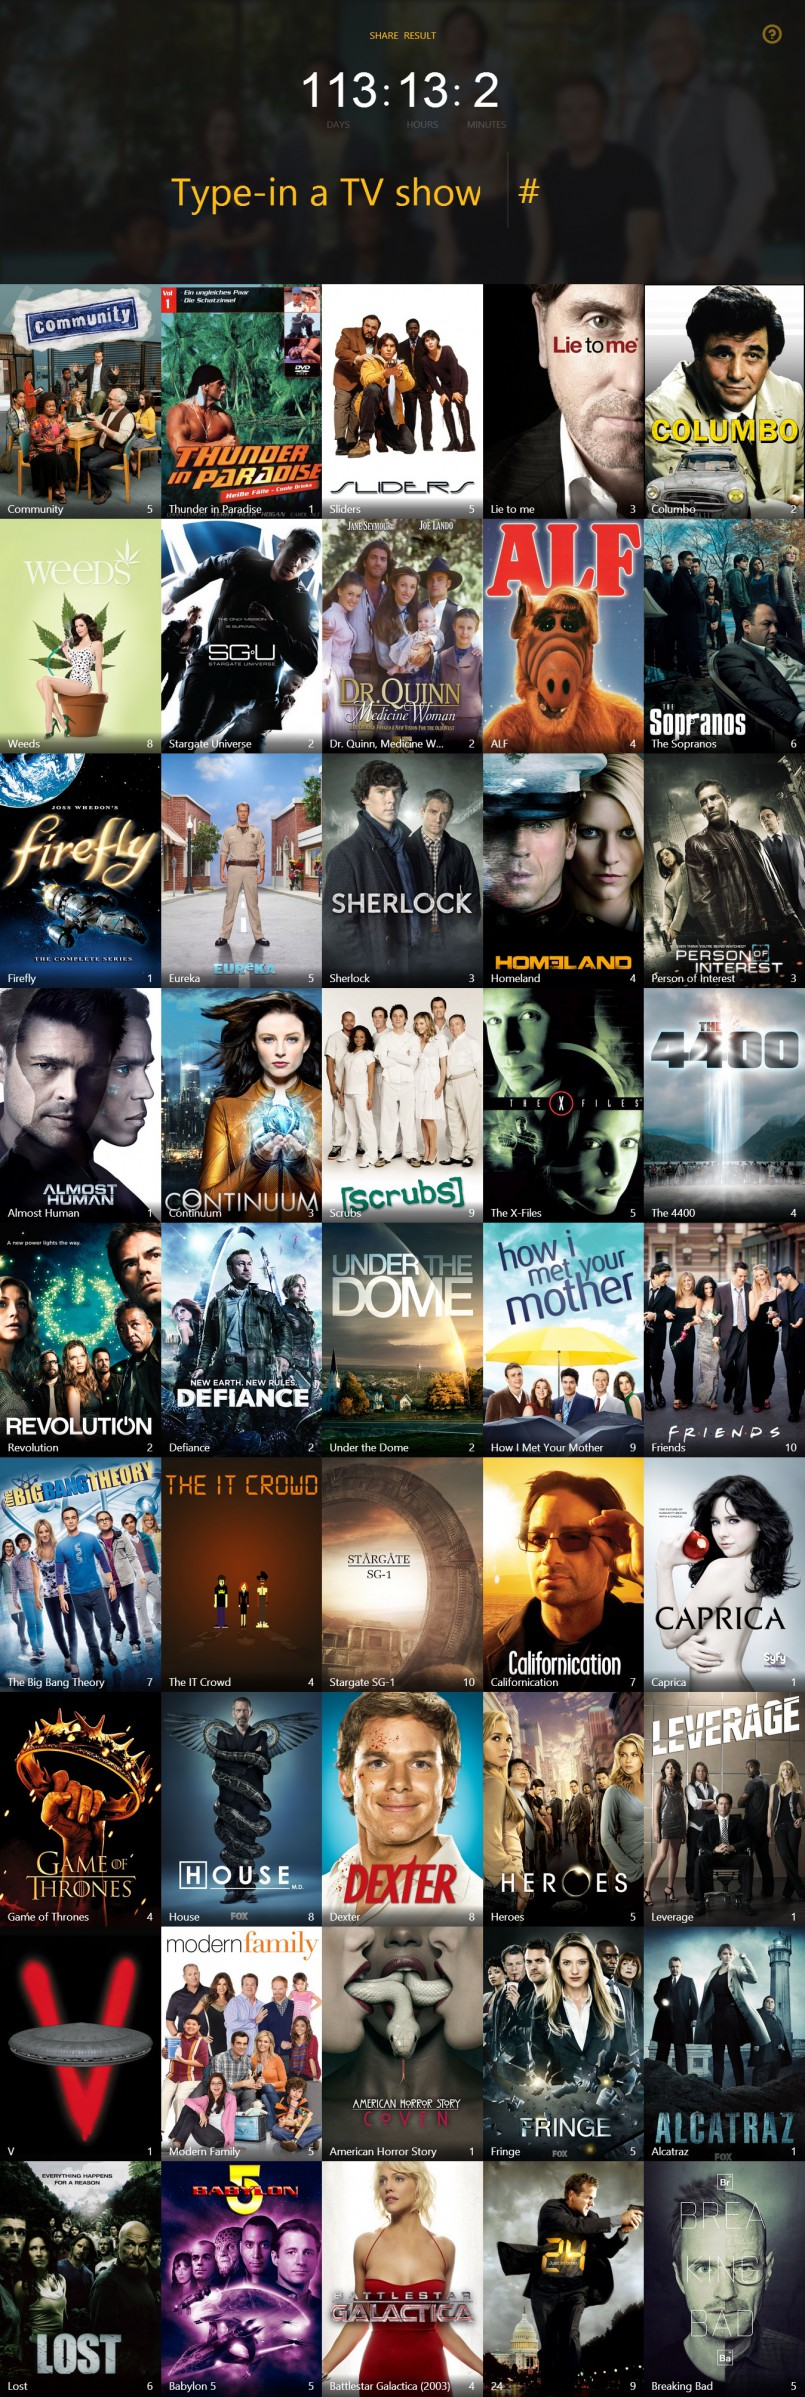 Calculate your total time spent watching TV shows